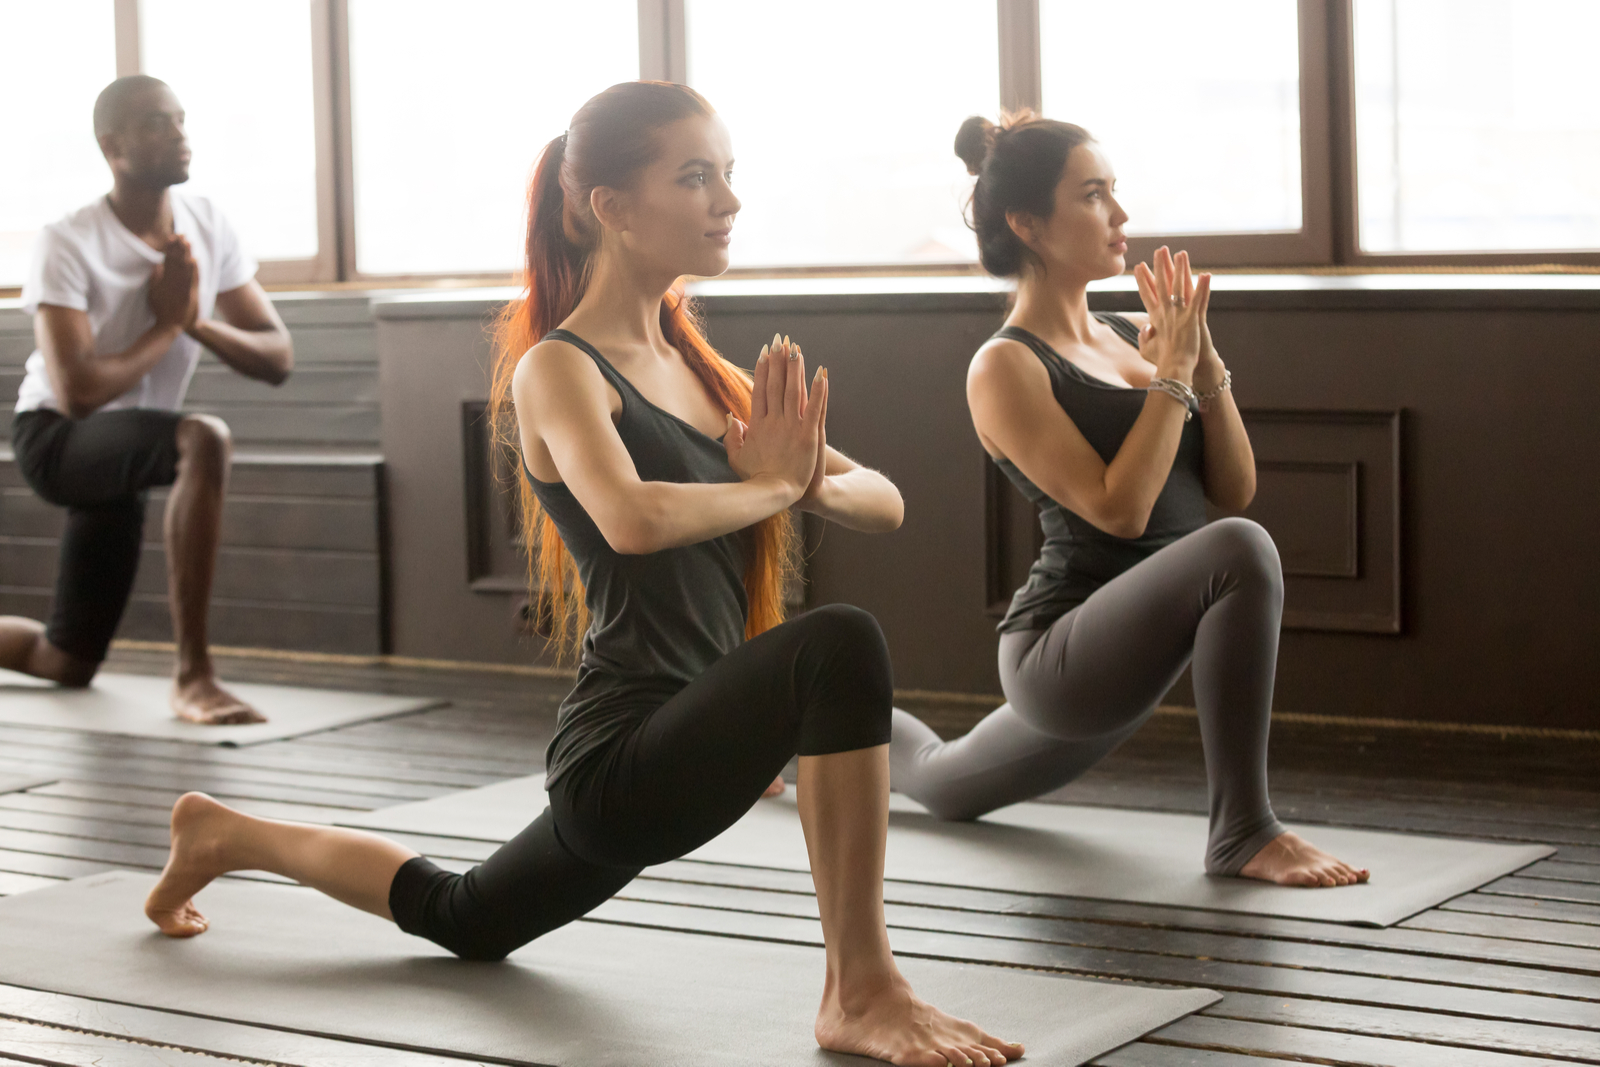 Low Lunge Pose | Yoga for Beginners: A Definitive Guide If You're New To Yoga